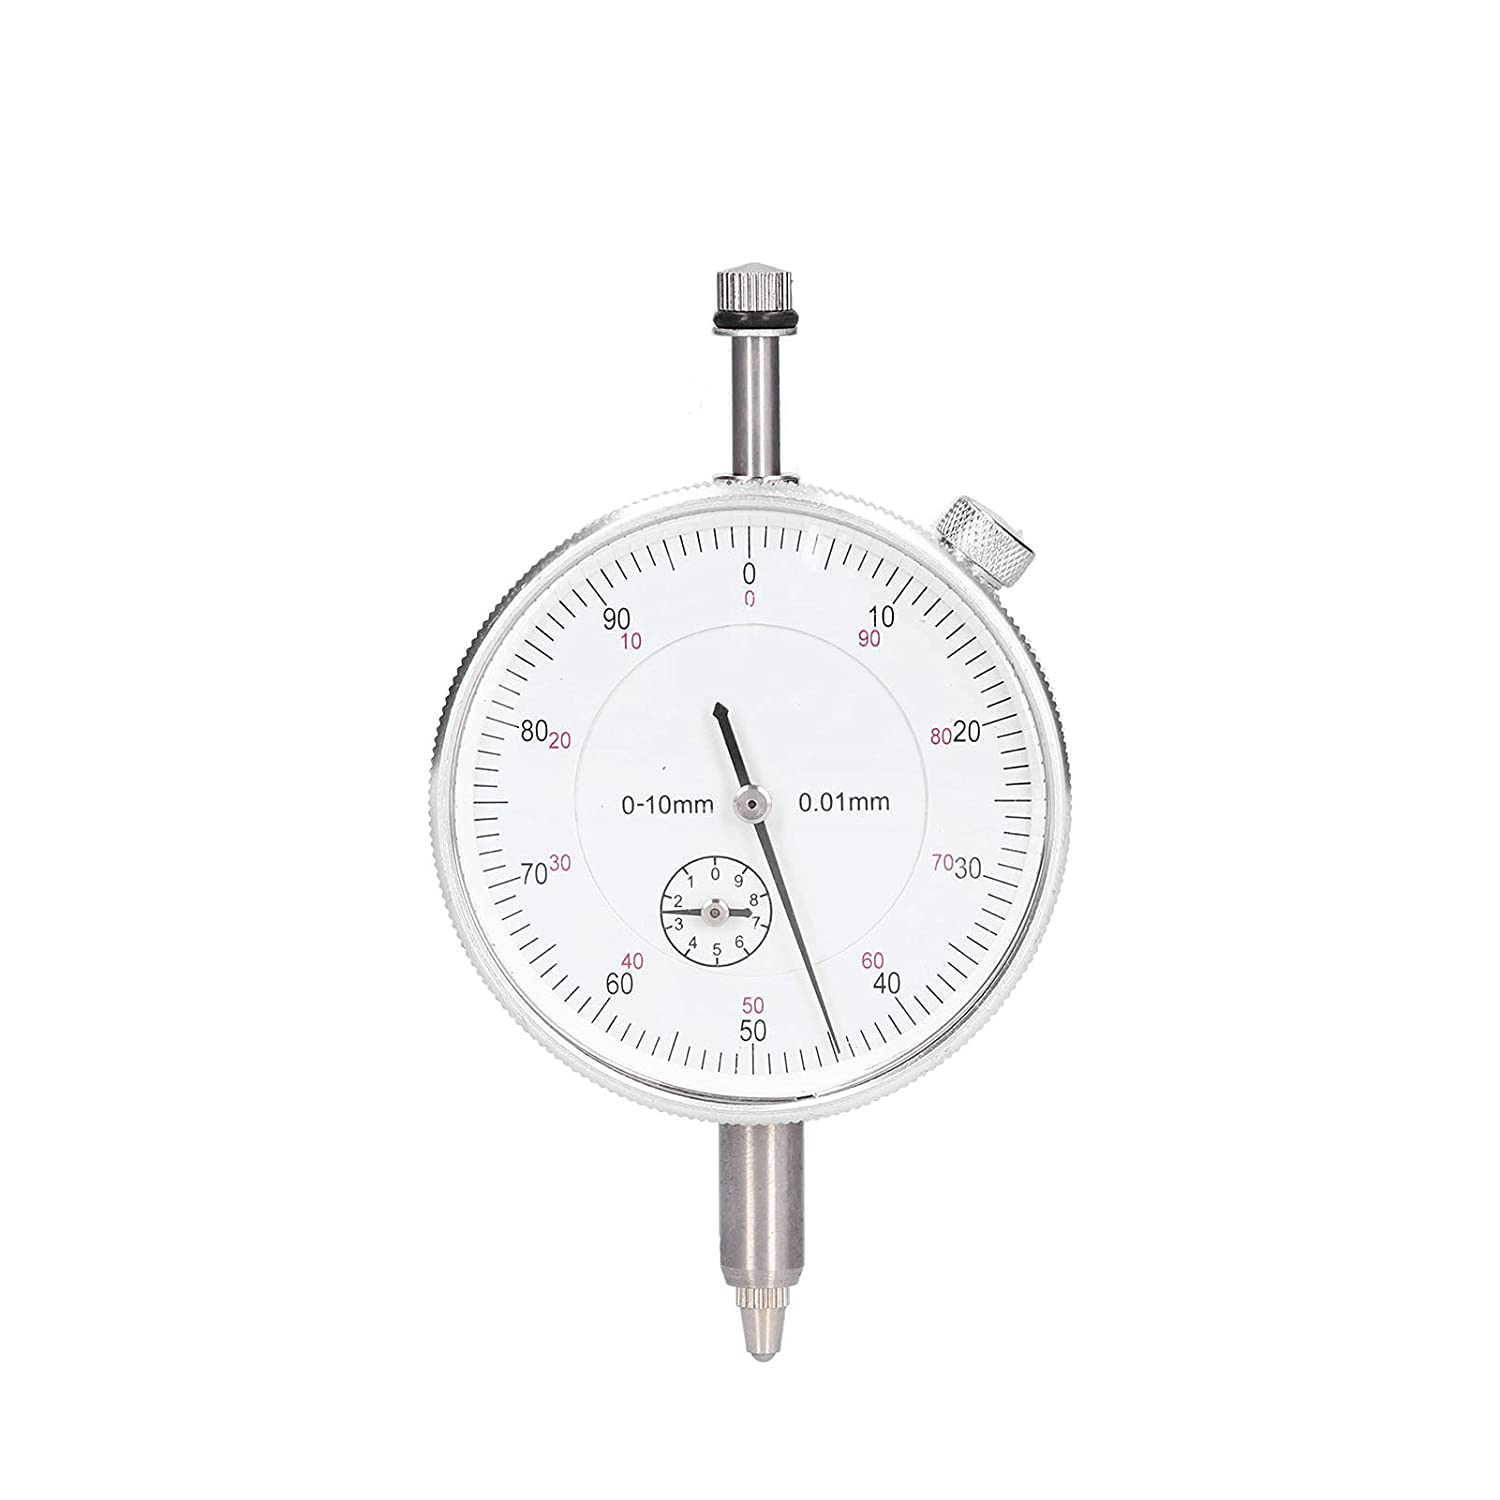 Dial Test Indicator Financial sales sale Aluminum Alloy Control In High order Arm Material